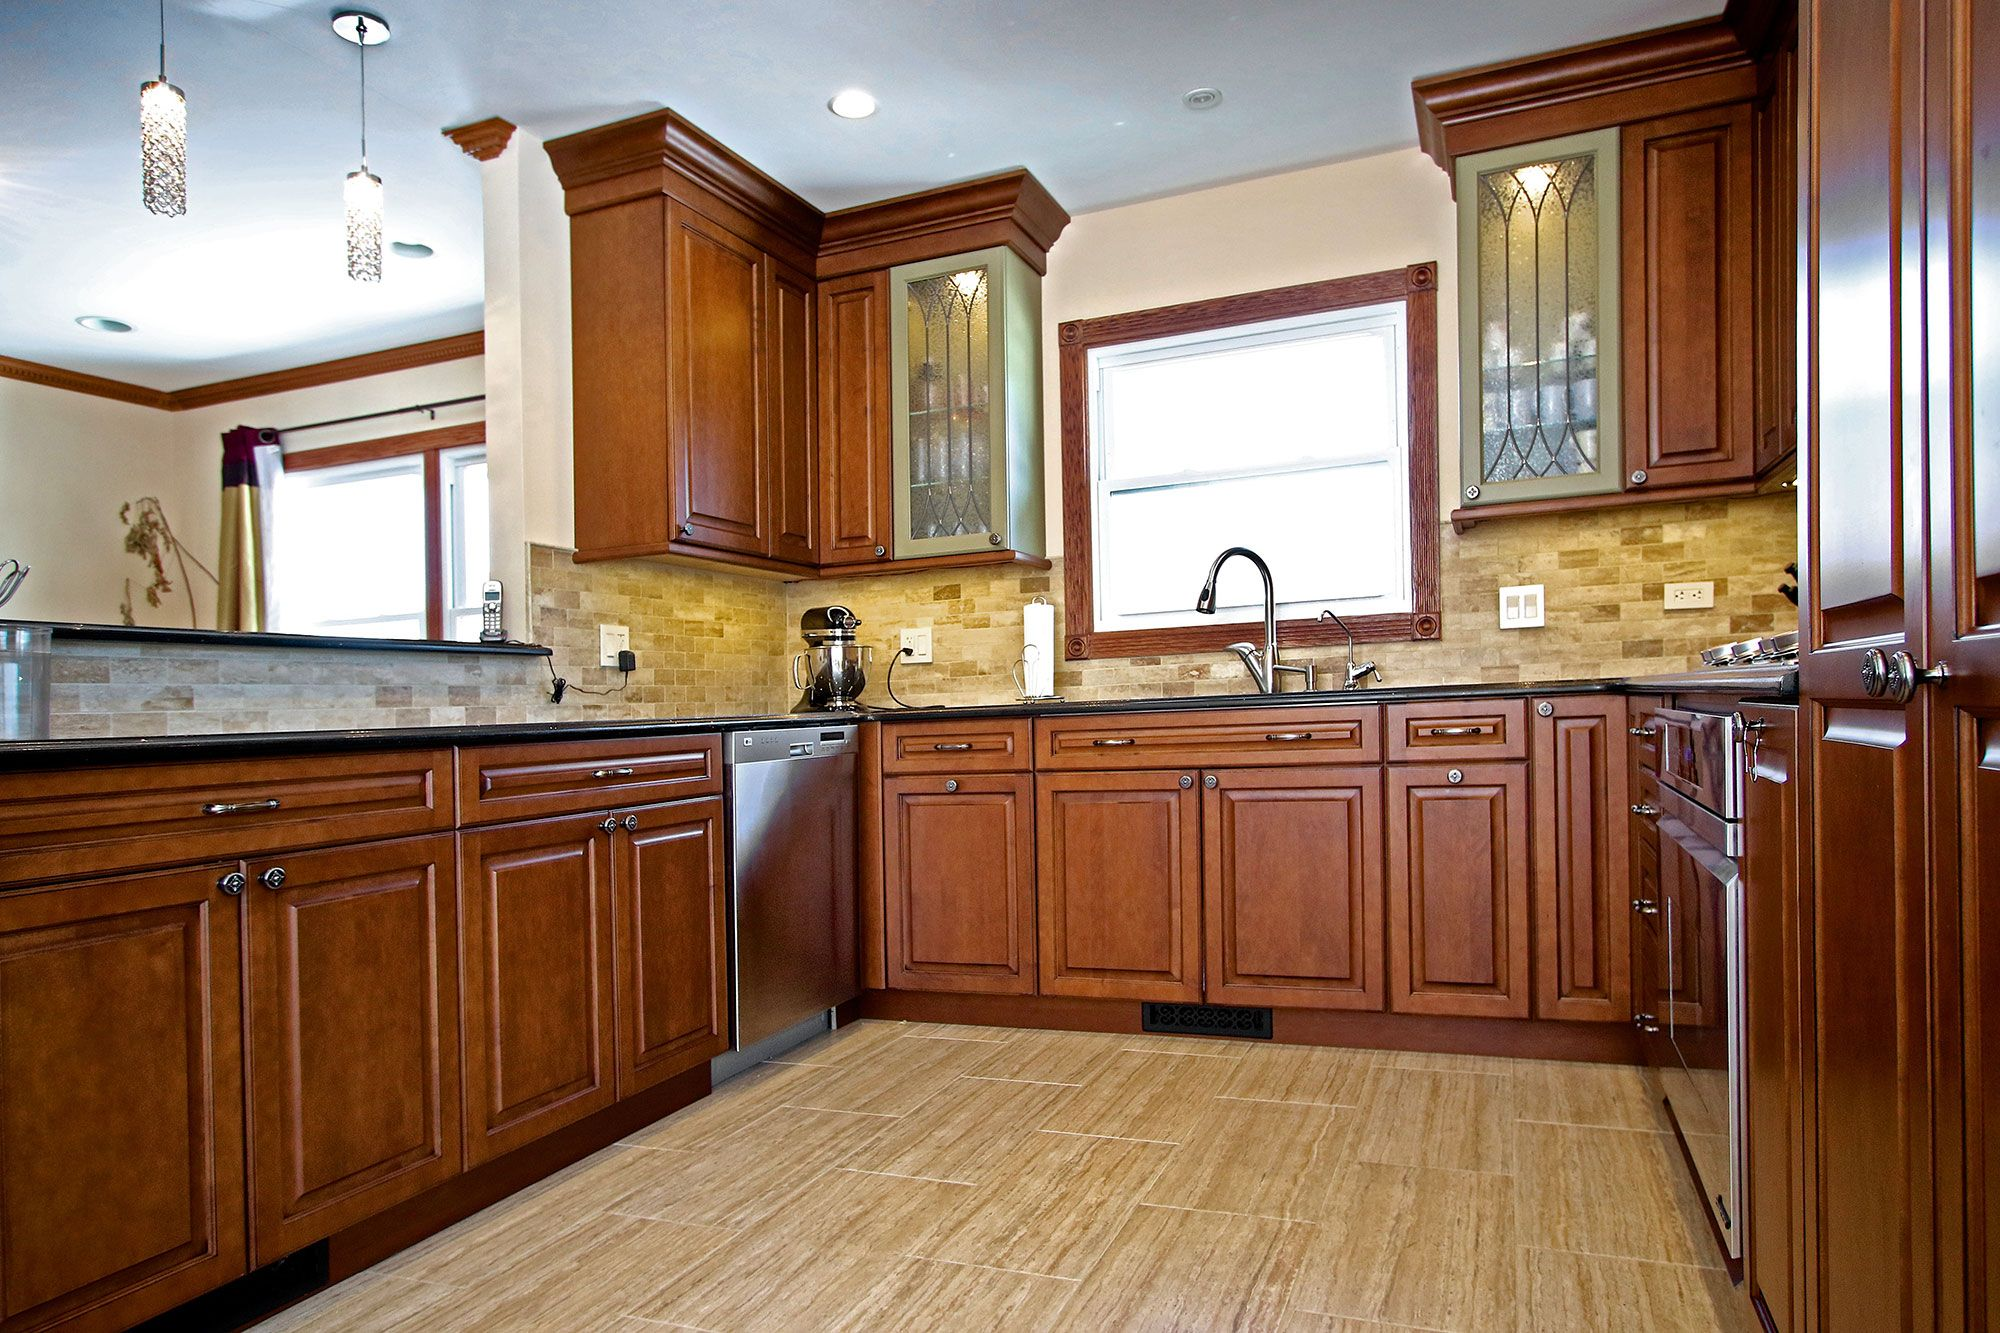 Designer kitchen s and bath slideshow image - Maple Slideshow Kitchen Cabinets Bathroom Vanity Cabinets